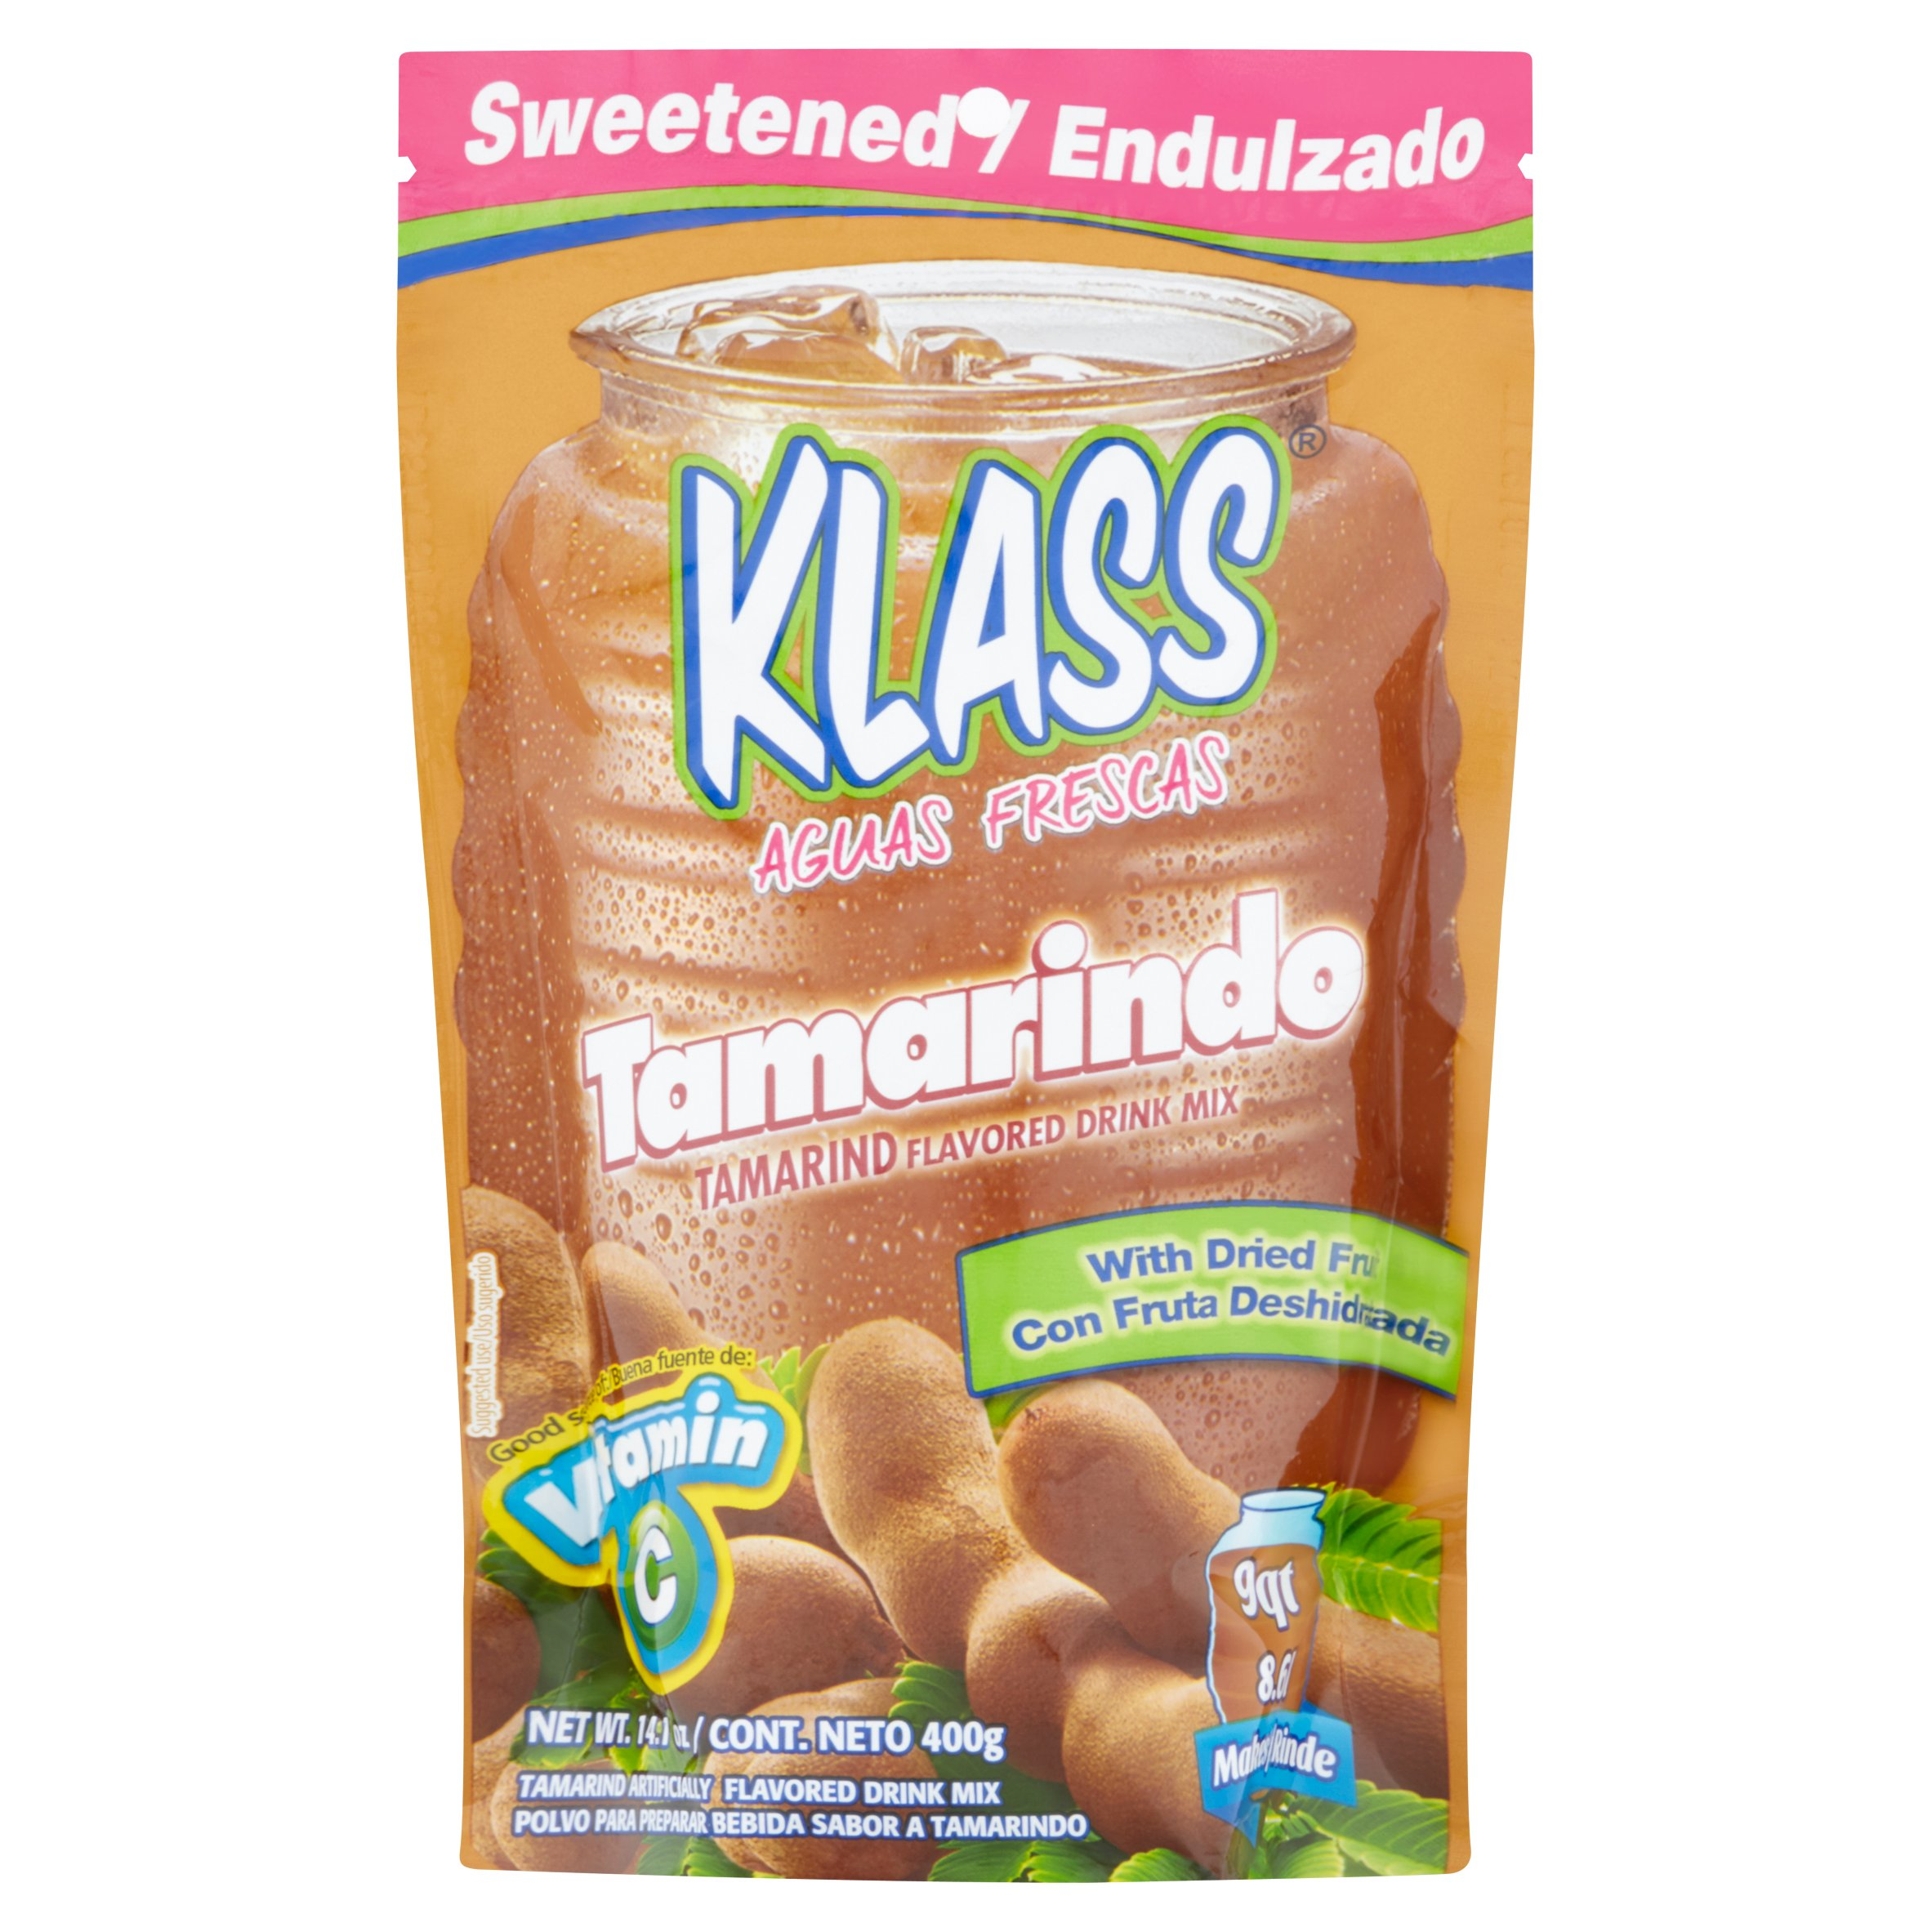 Klass Tamarind Flavored Drink Mix, 14.1 oz